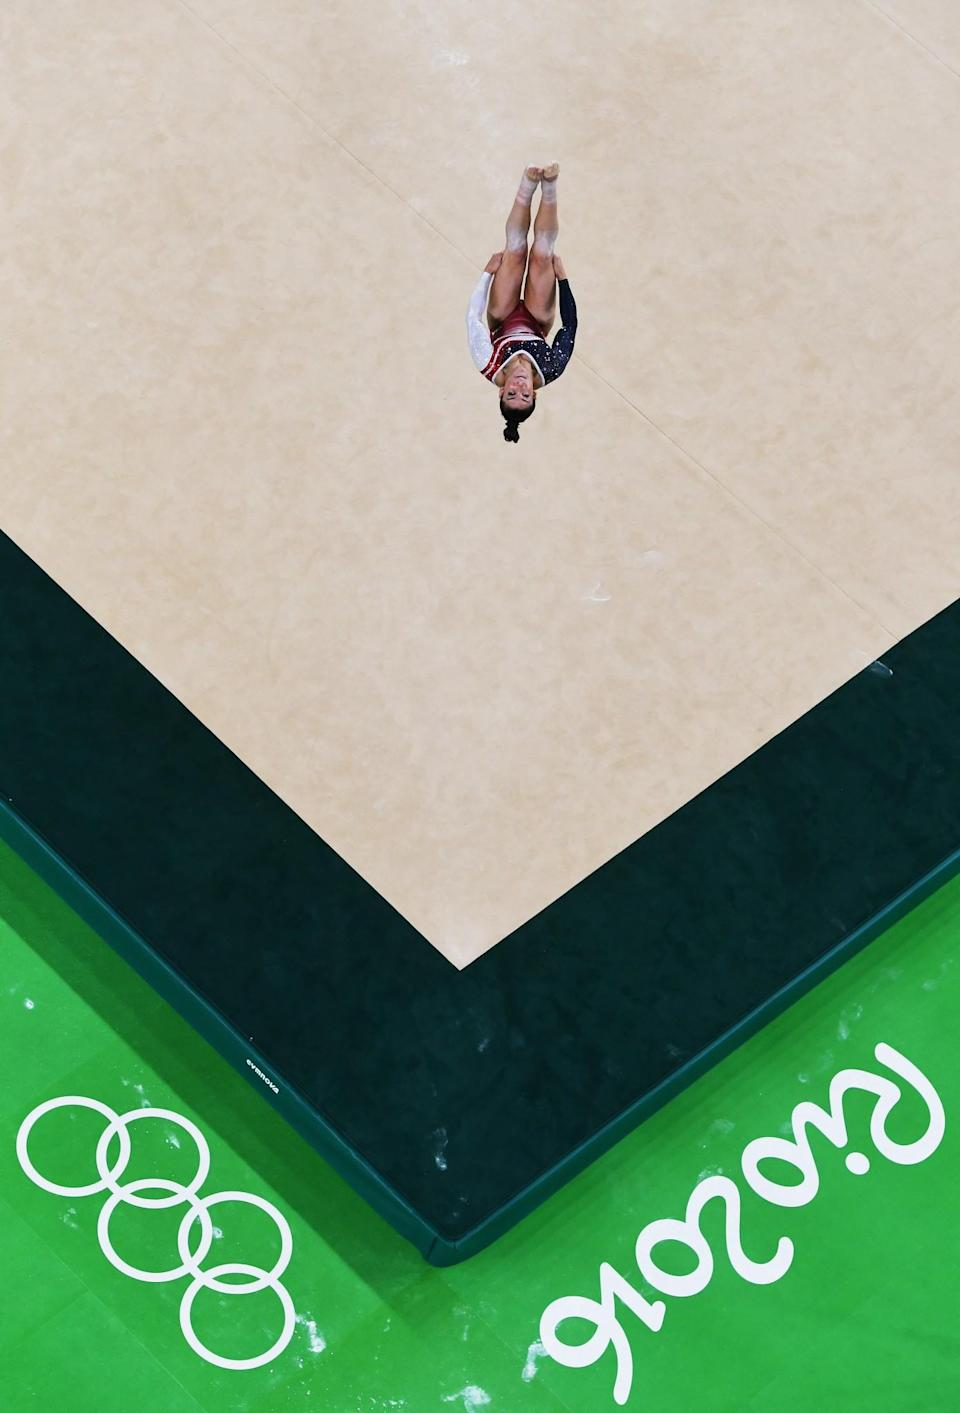 <p>Alexandra Raisman of the United States competes on the floor during the Artistic Gymnastics Women's Team Final on Day 4 of the Rio 2016 Olympic Games at the Rio Olympic Arena on August 9, 2016 in Rio de Janeiro, Brazil. (Photo by Ian Walton/Getty Images) </p>